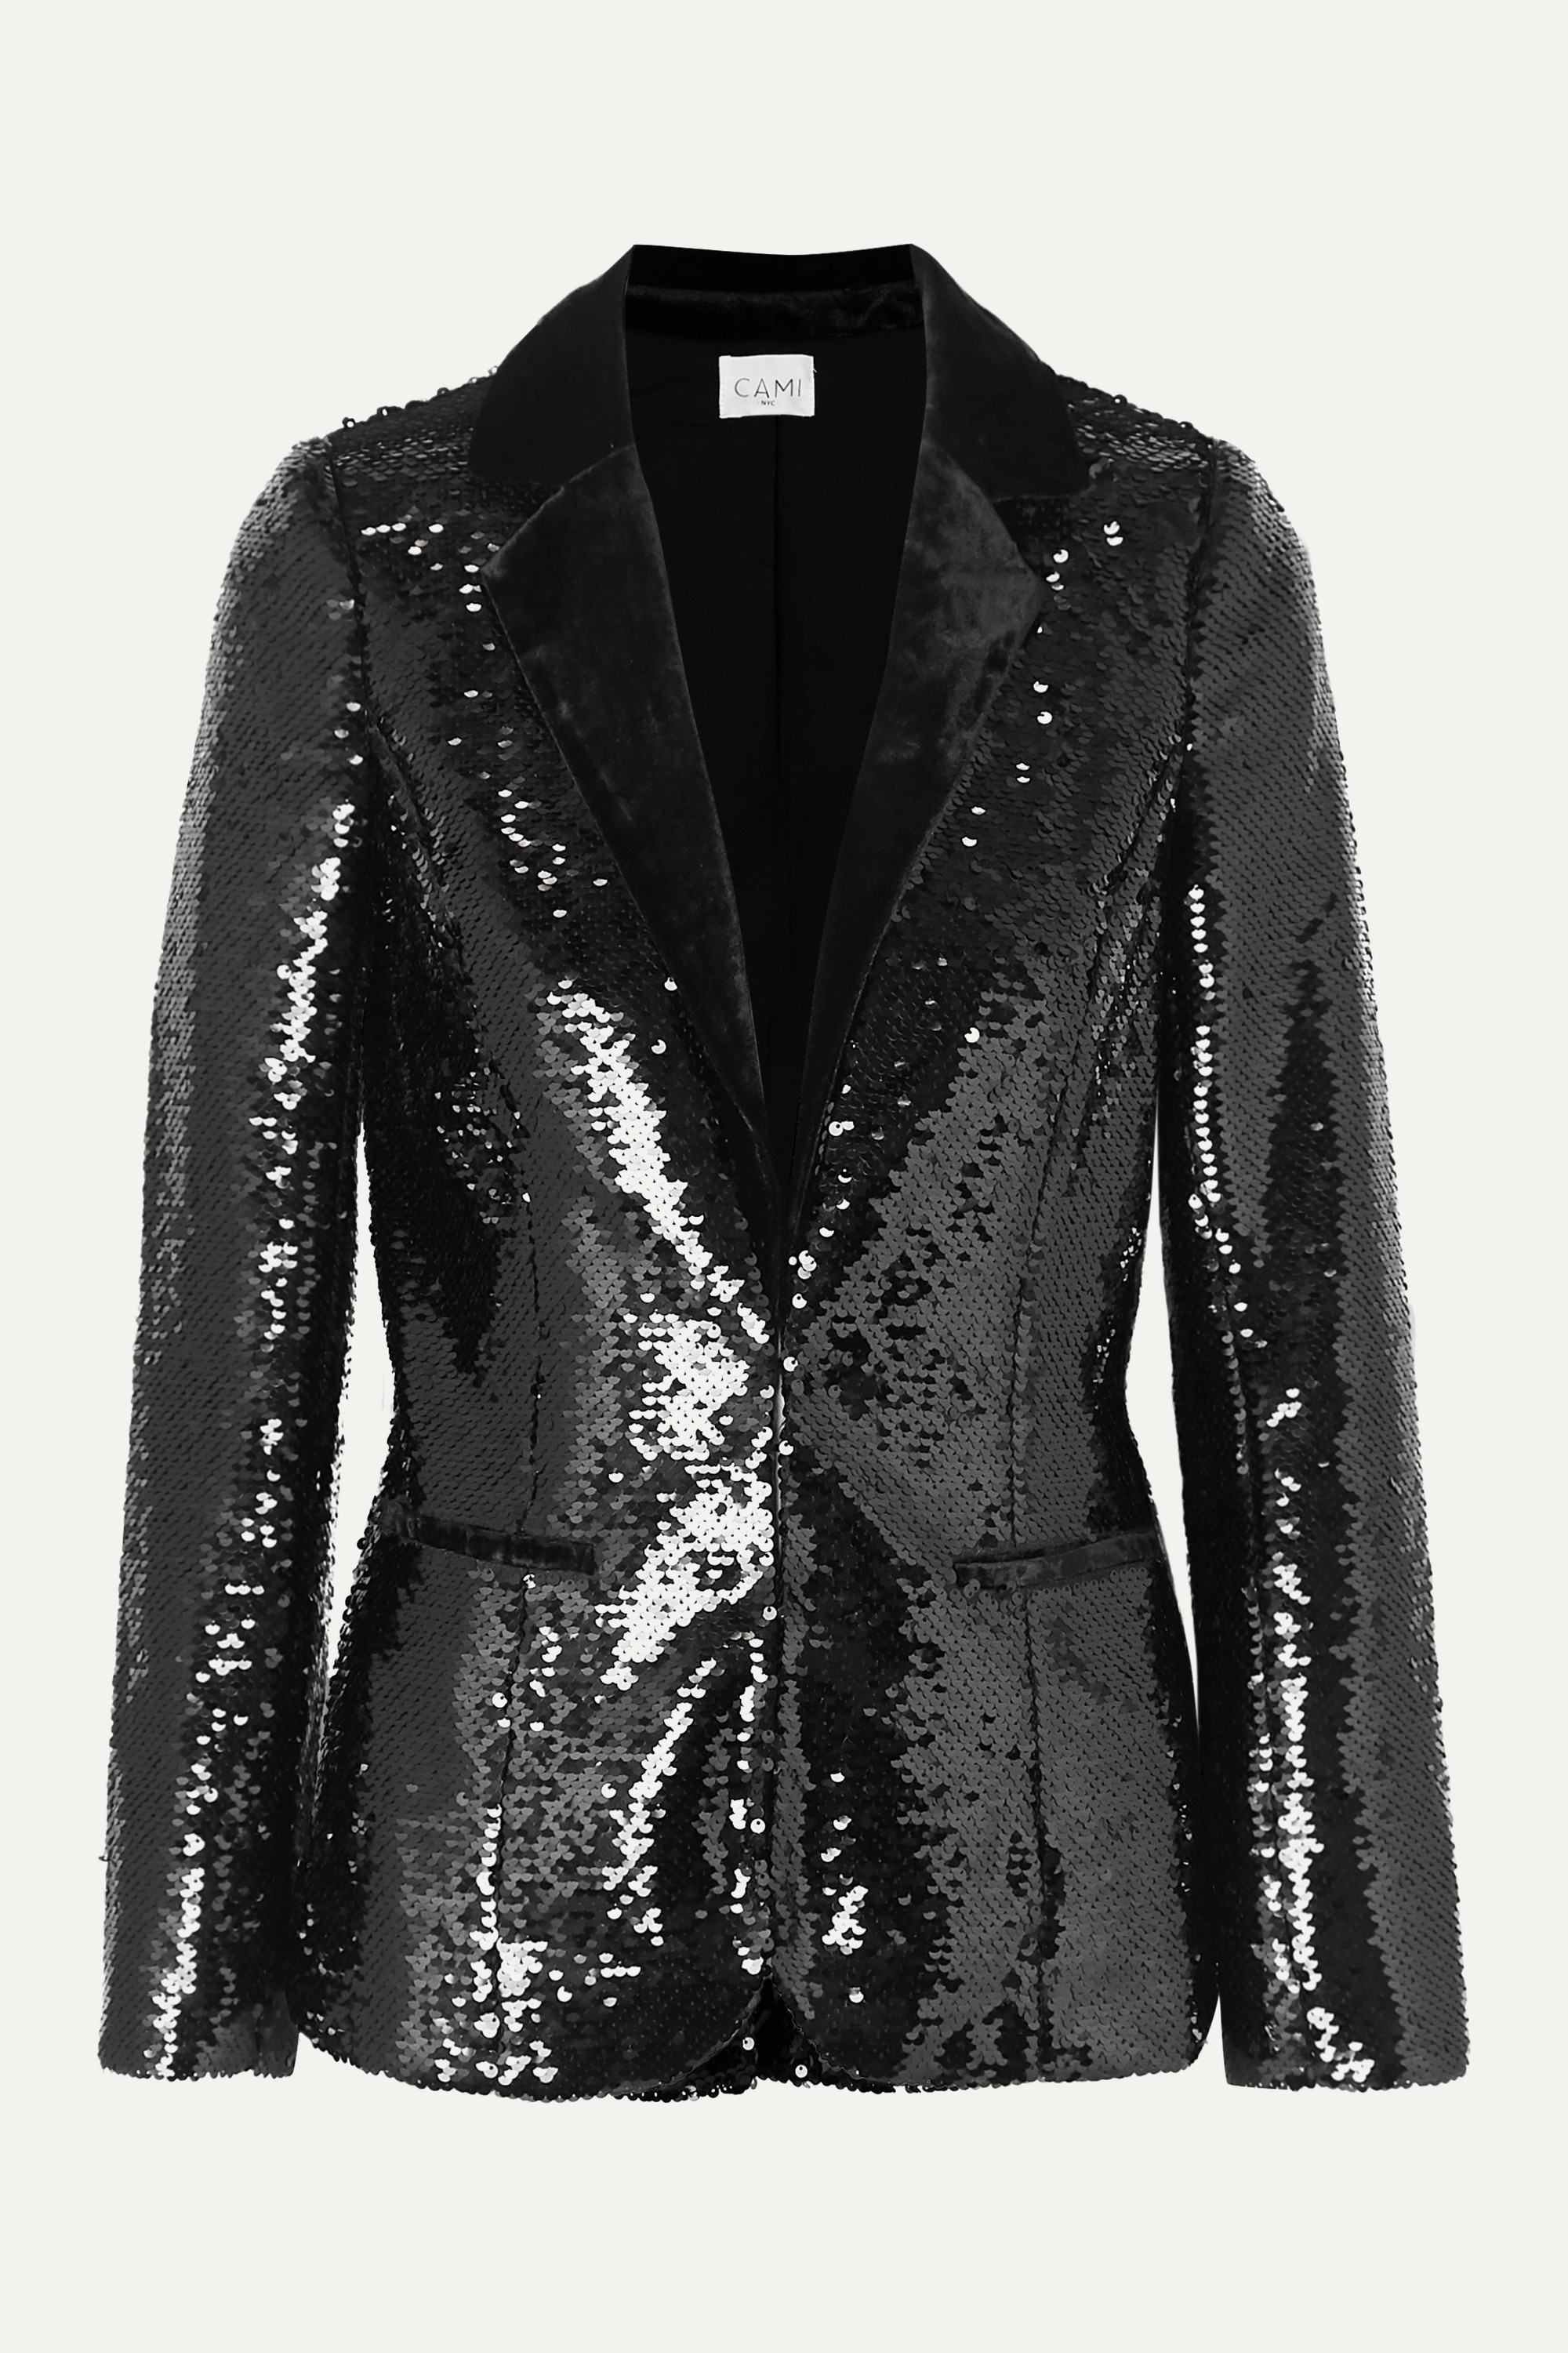 Cami NYC The Lennon velvet-trimmed sequined crepe blazer